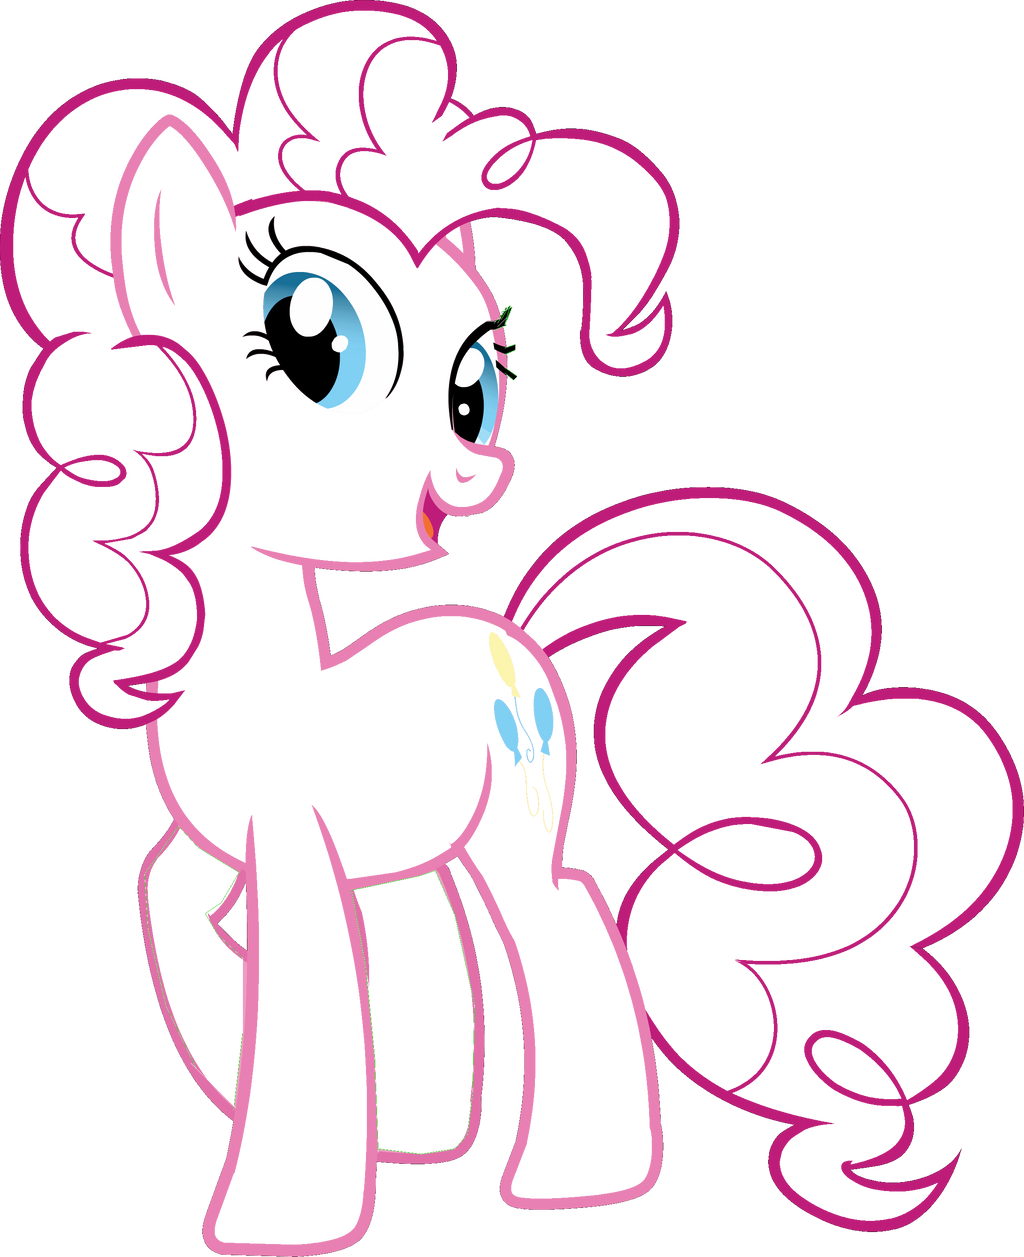 Edgeworth87 1 0 Pinkie Pies Outline By